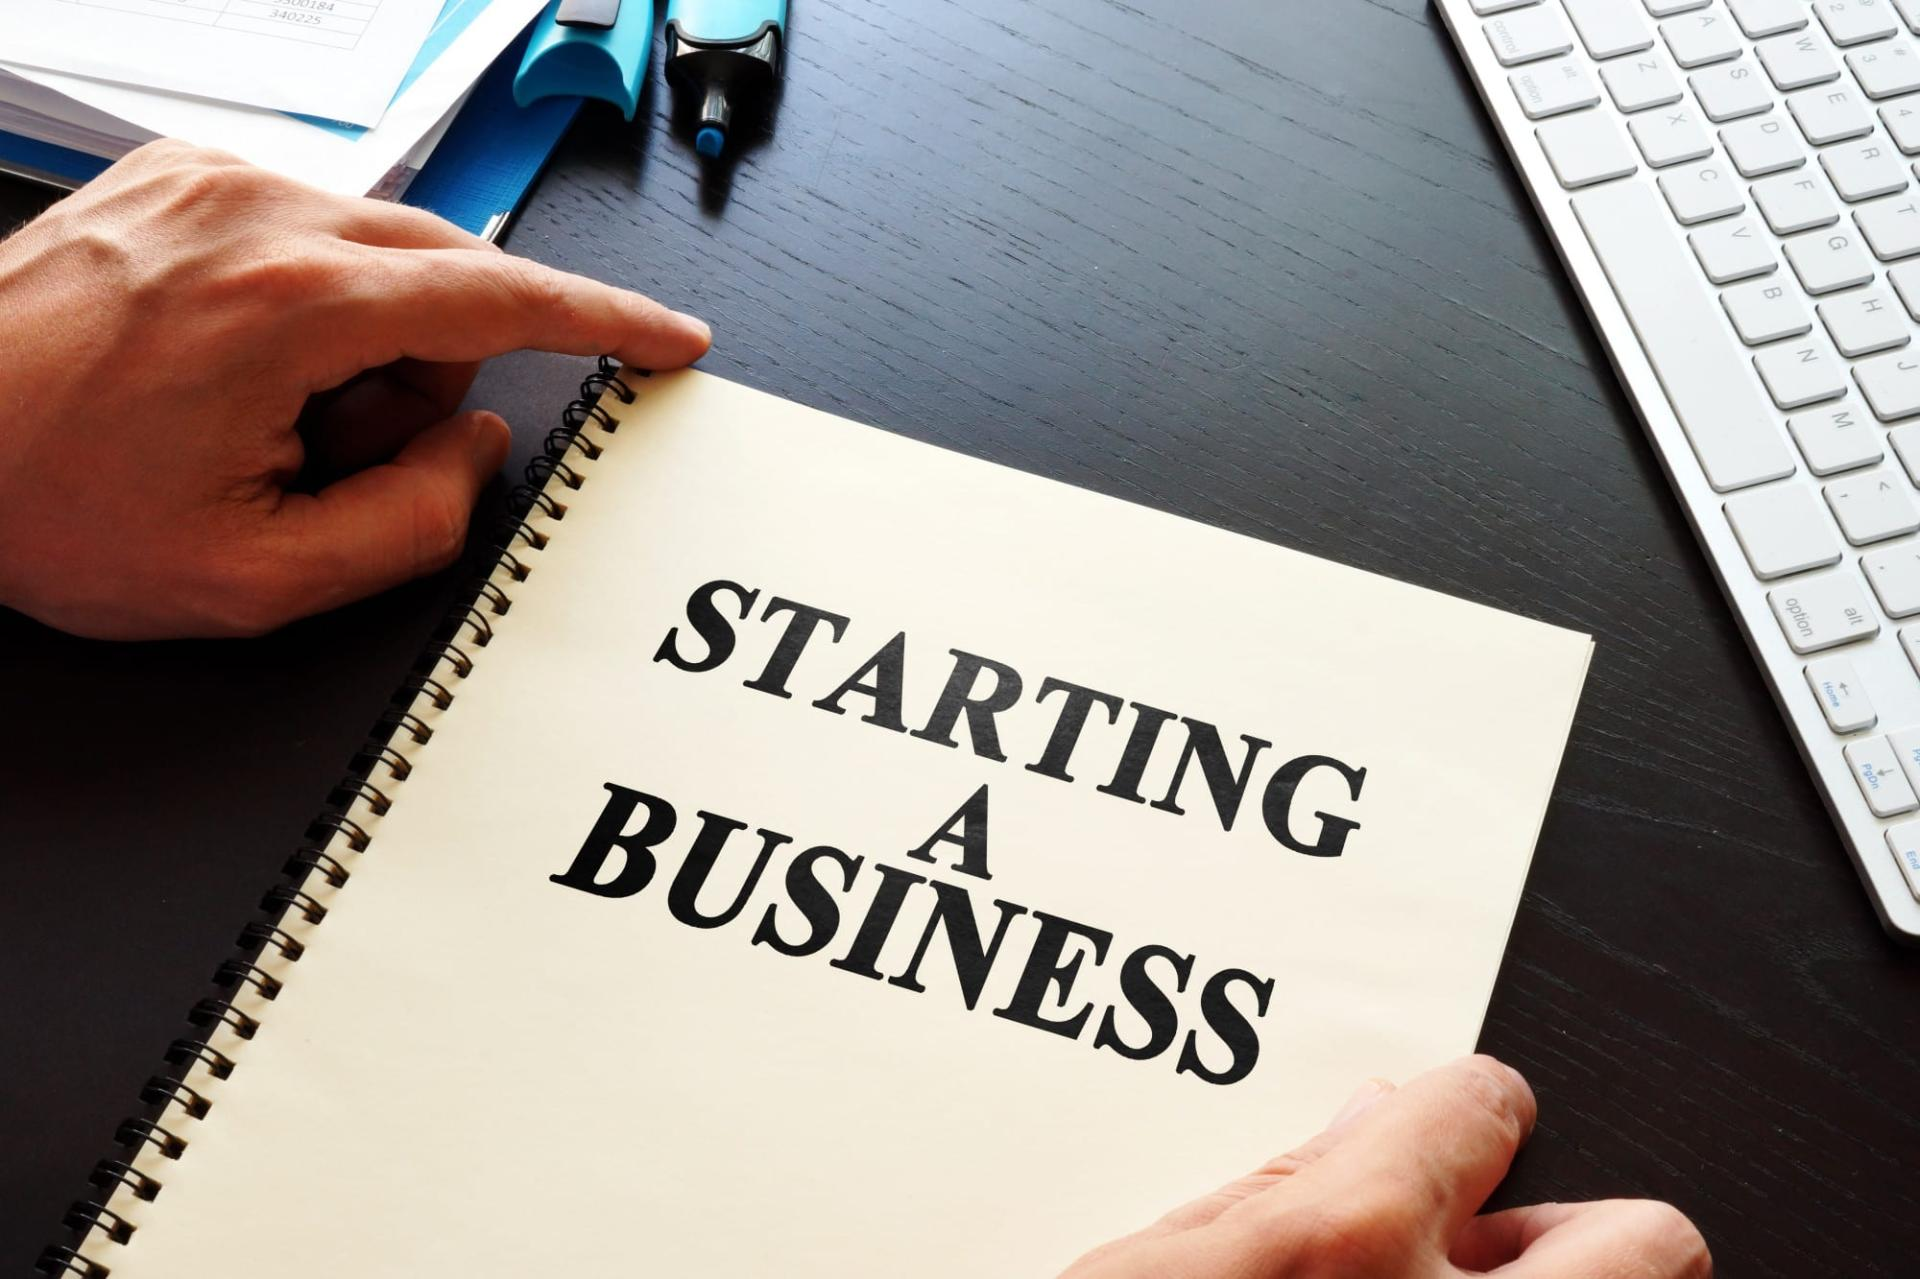 notebook with a text saying starting a business in small steps at a time